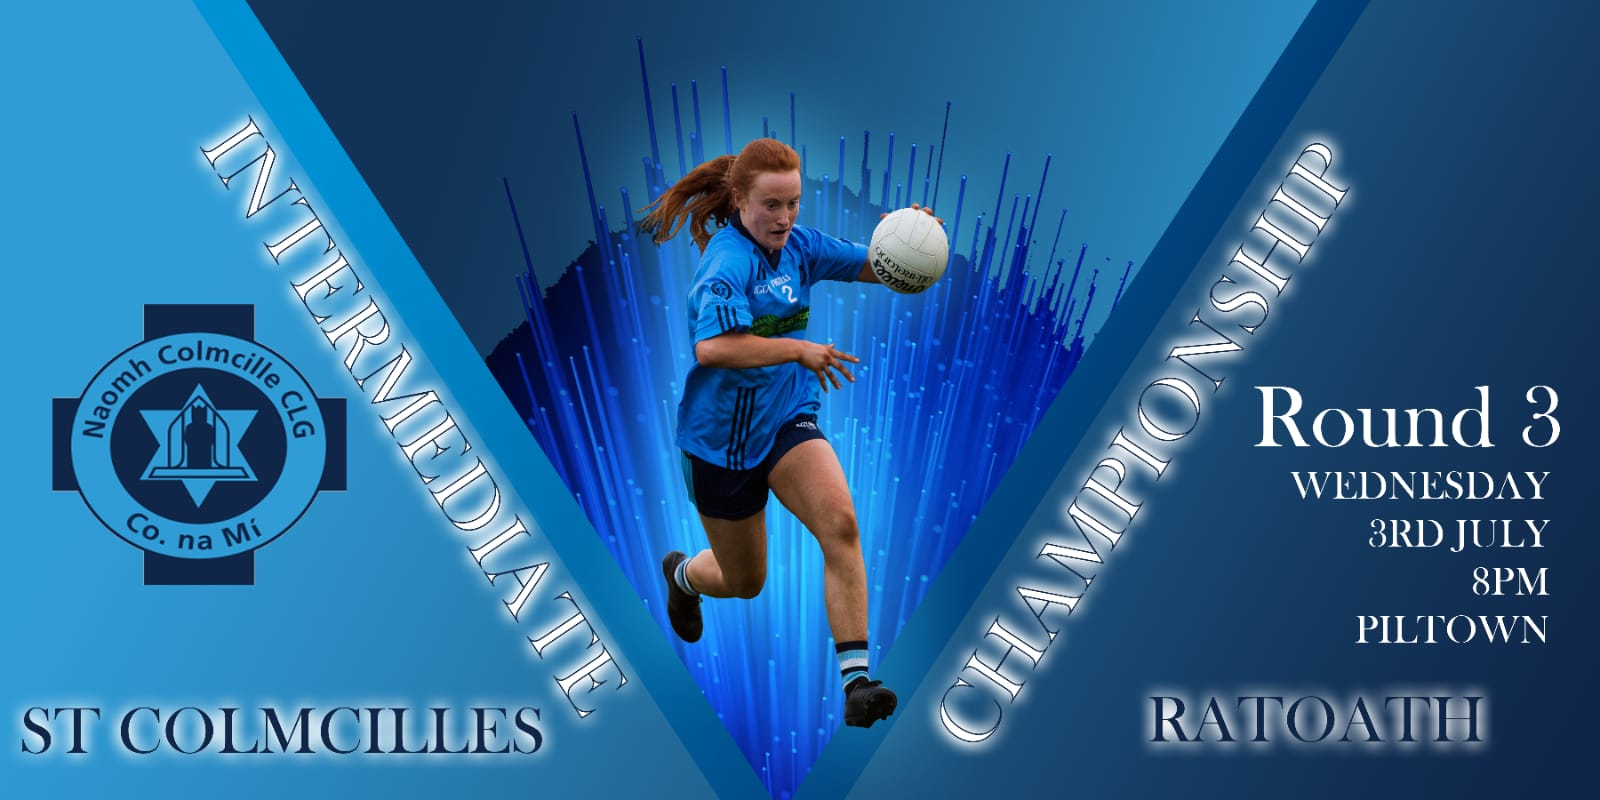 In the battle of the blues St Colmcilles A lose to Ratoath in Intermediate Championship Round 3, Piltown 3/3/19